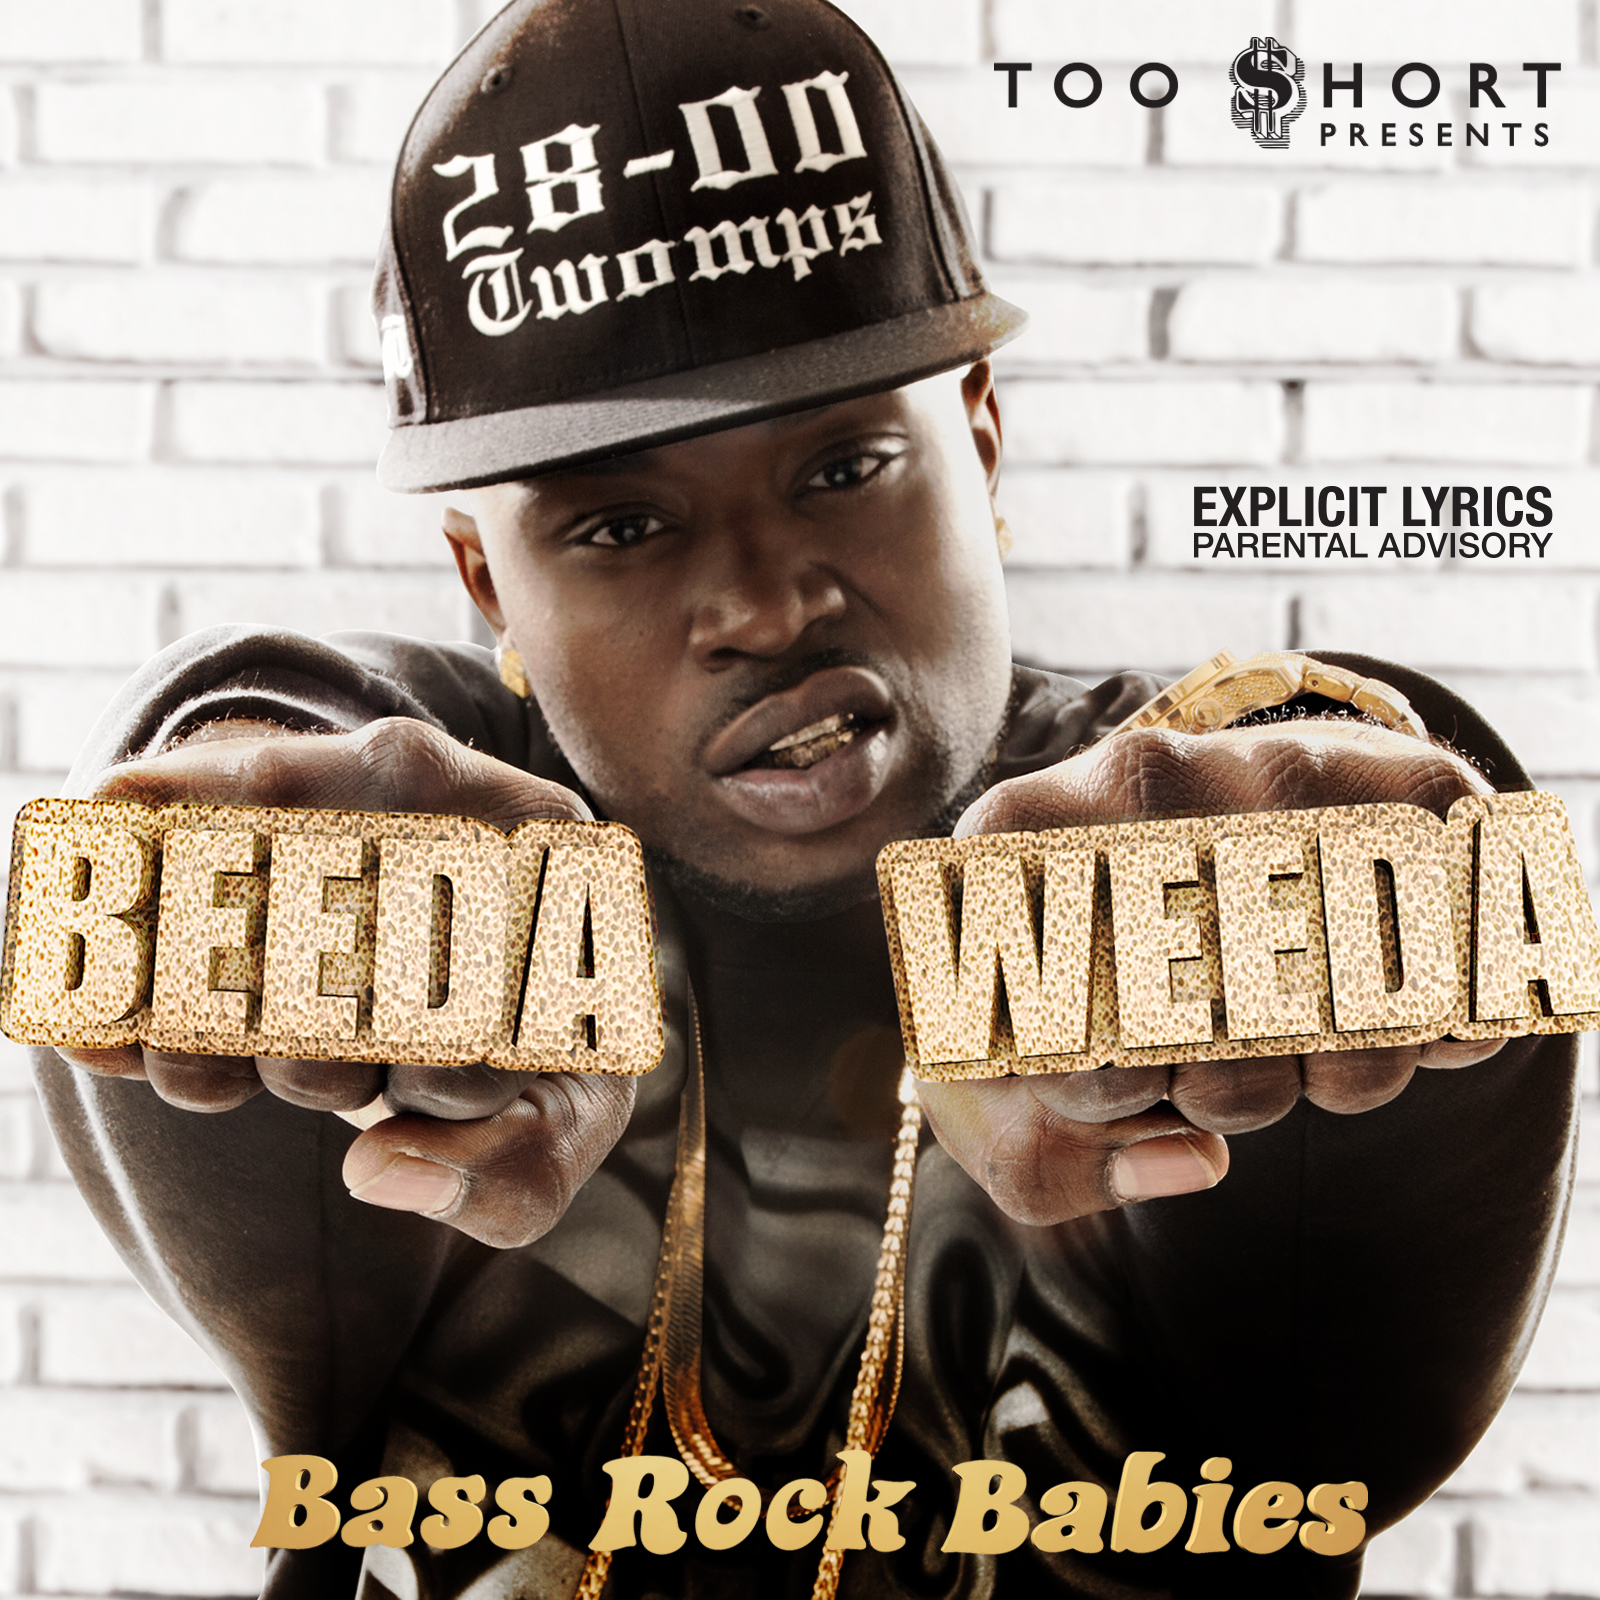 Beeda Weeda Brainofbmw Music Video